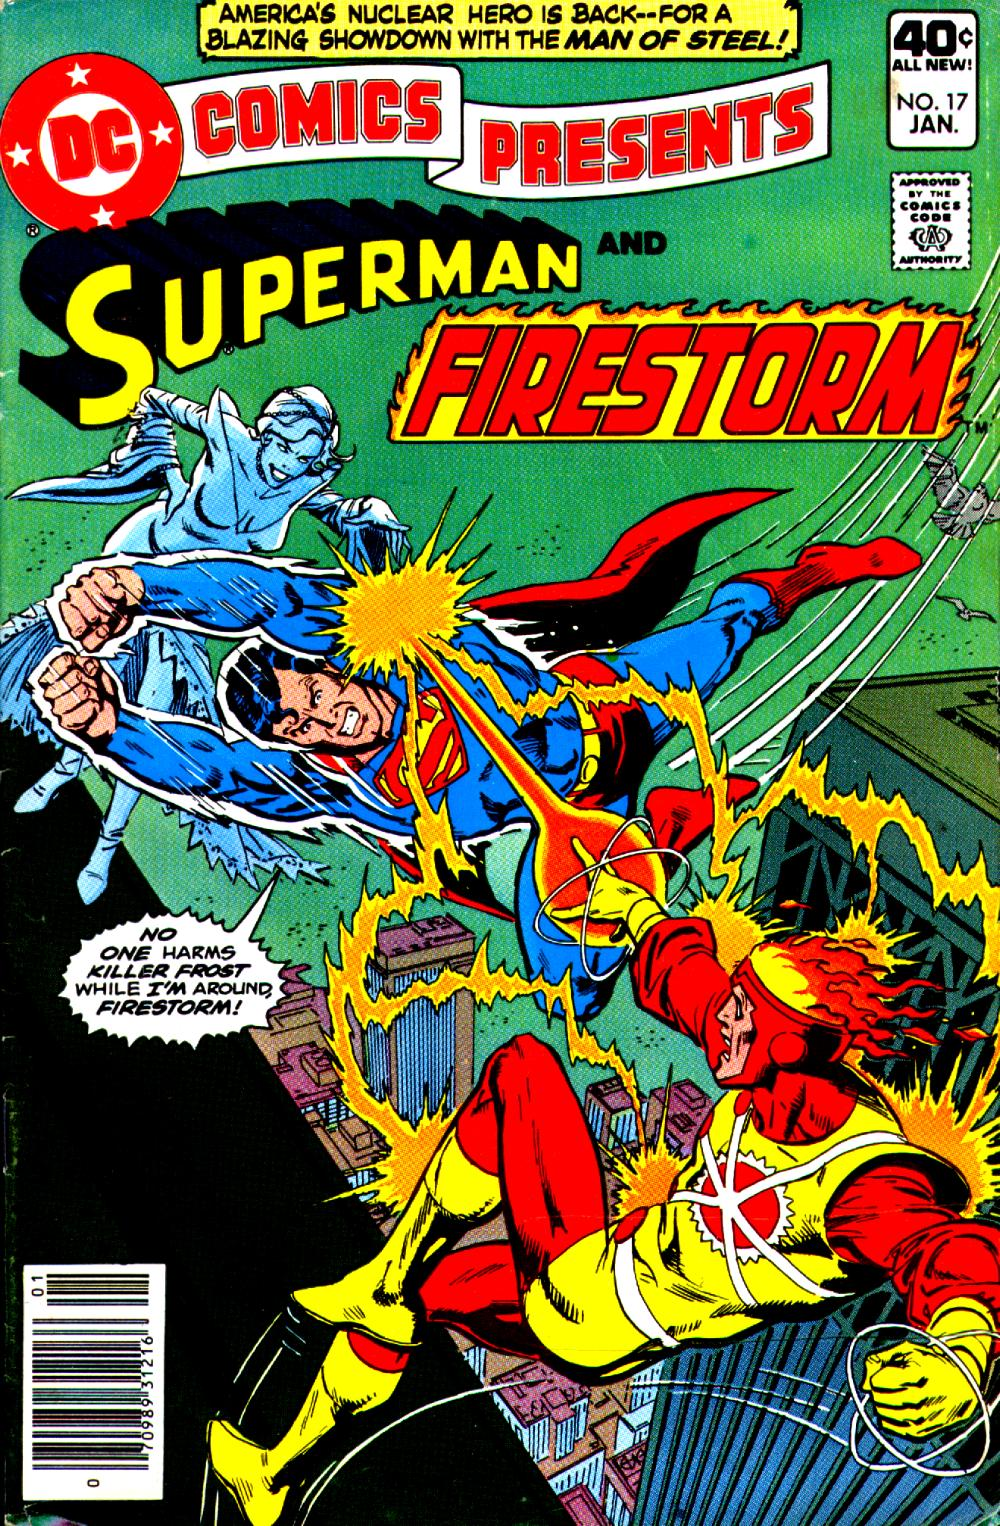 DC Comics Presents #17 starring Superman and Firestorm by Gerry Conway and José Luis García-López